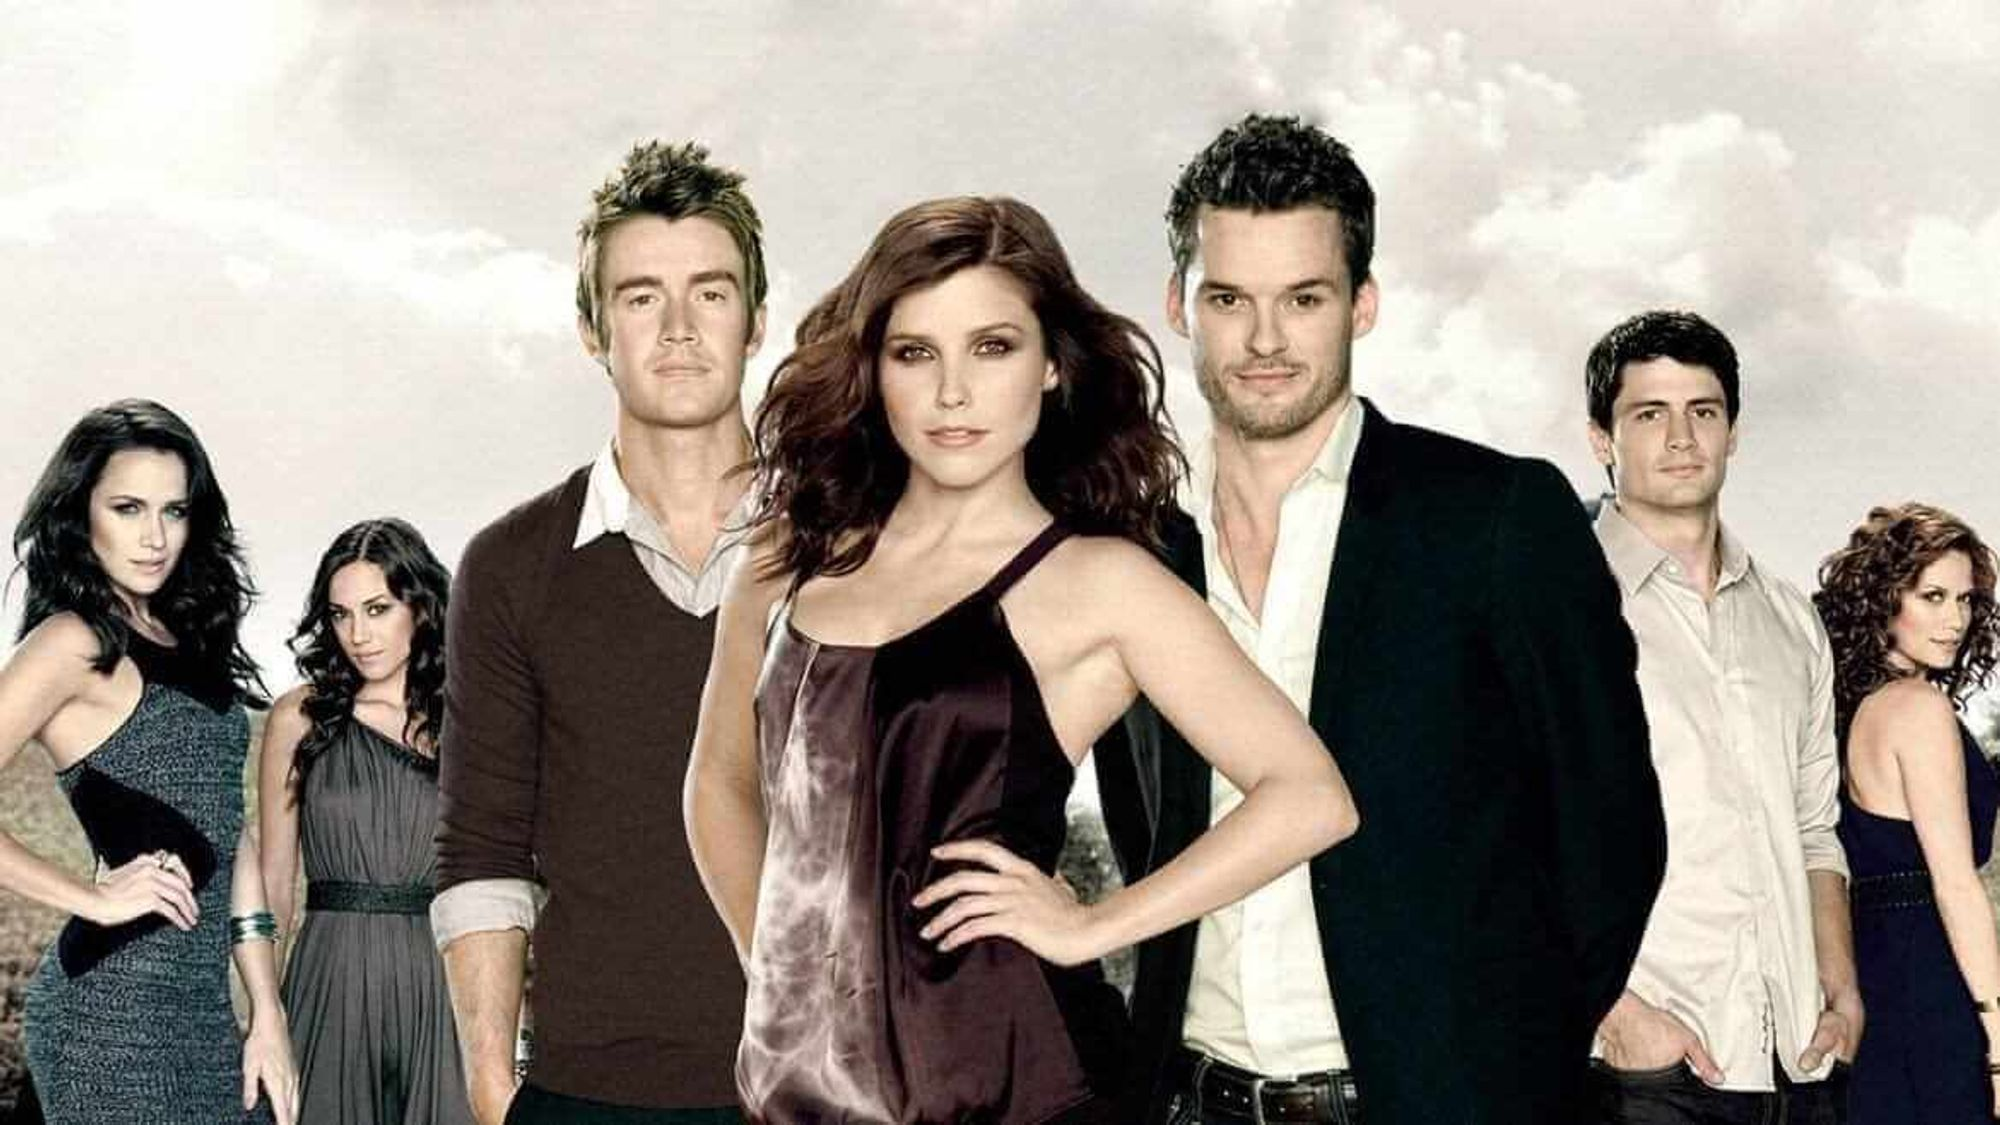 How to Watch One Tree Hill on Netflix - Best VPNs to Unblock Netflix